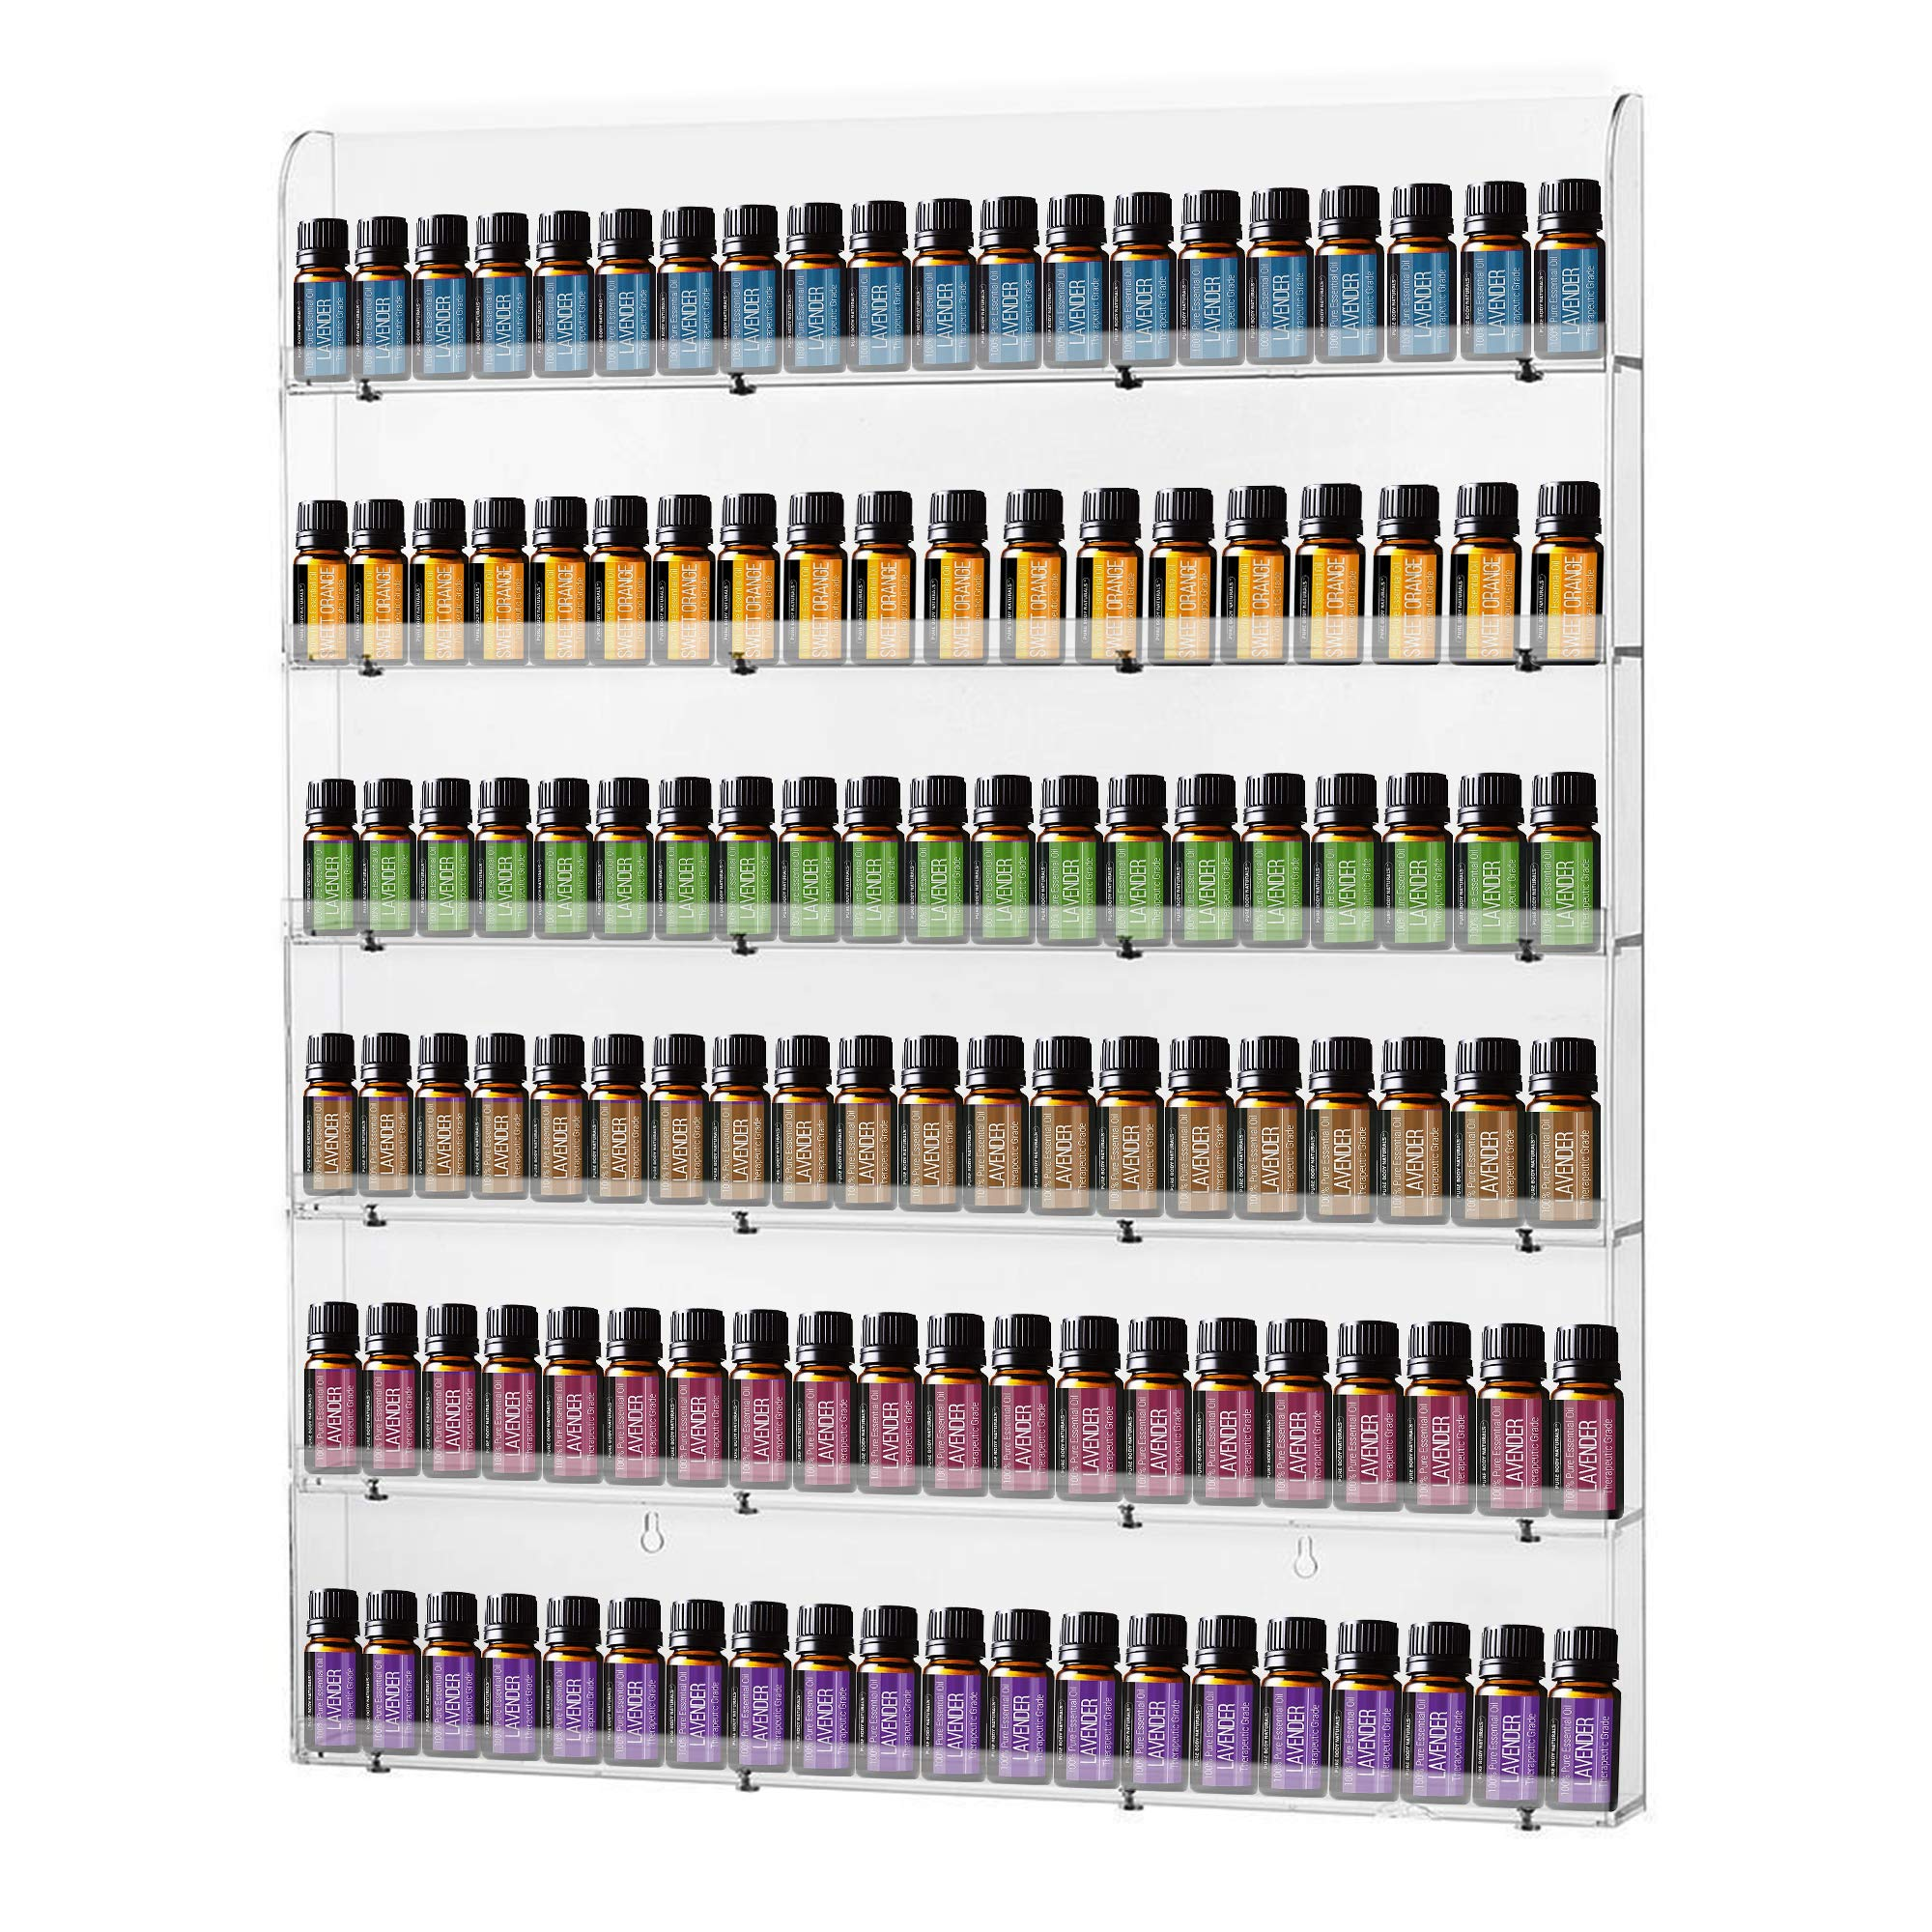 Nail Polish Wall Rack, AIFAIFA Storage Rack for Nail Polish, Essential Oil Storage and Display, Holds Up to 108 Bottles, Clear Acrylic